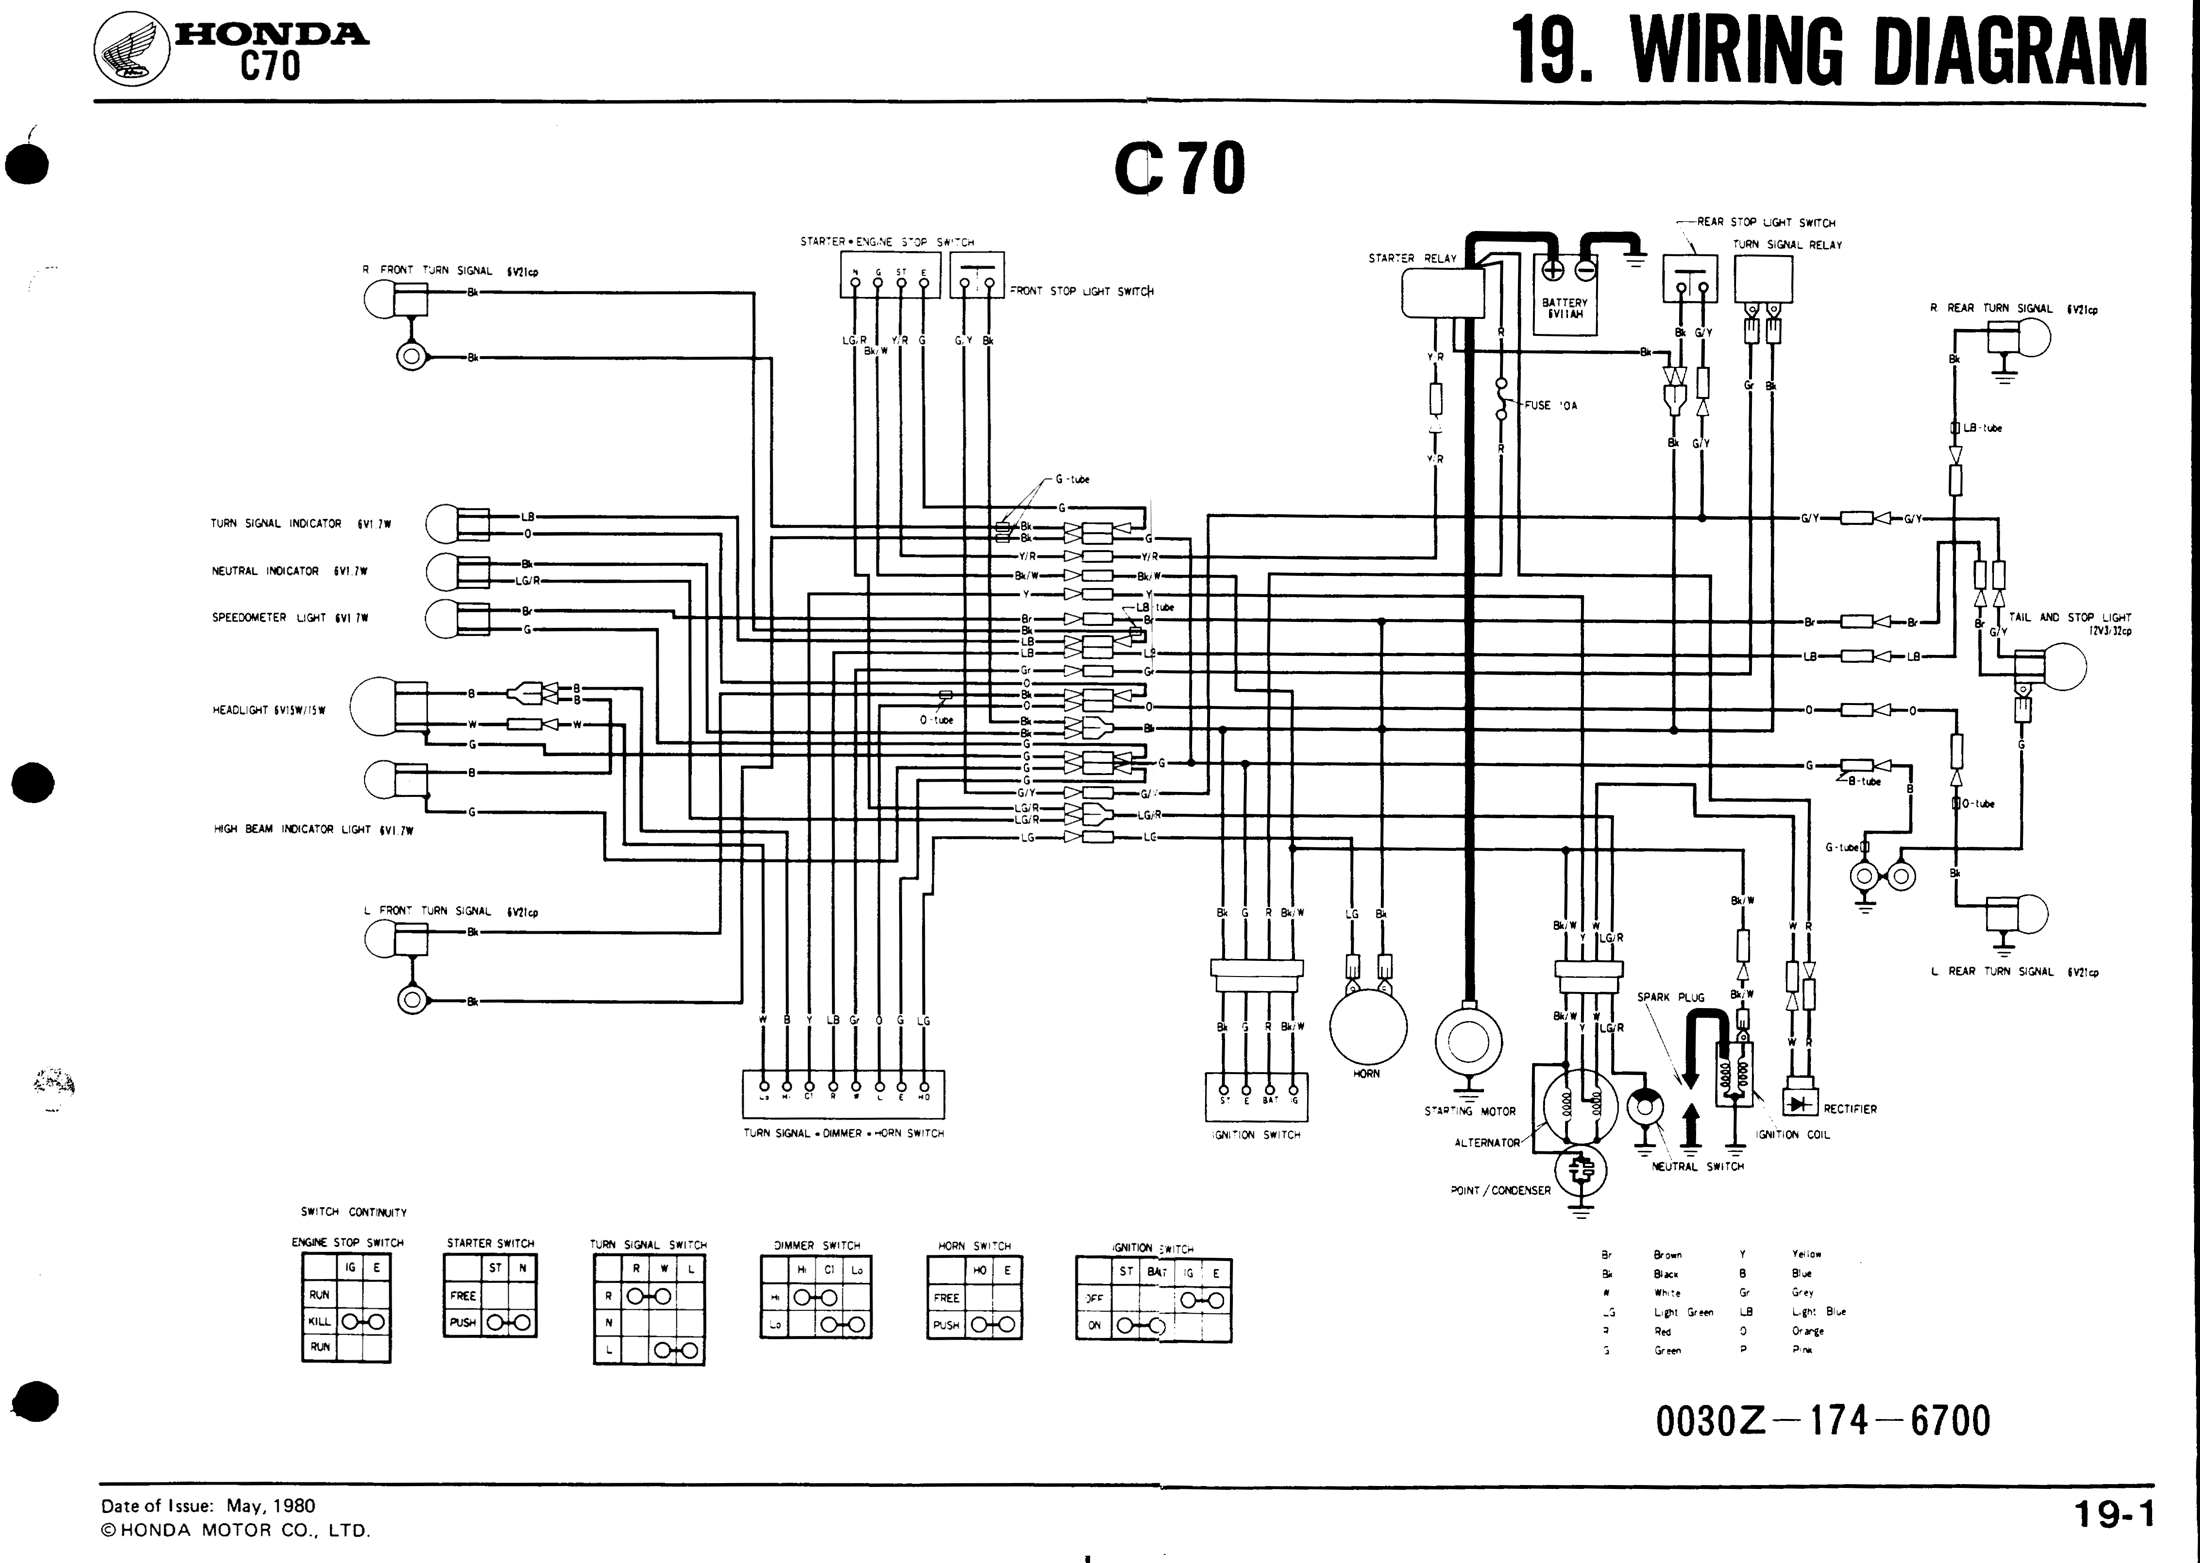 Diagram Honda C70 Passport Motorcycle Wiring Harness Diagram Full Version Hd Quality Harness Diagram Electrical Rewiring Therogues Fr